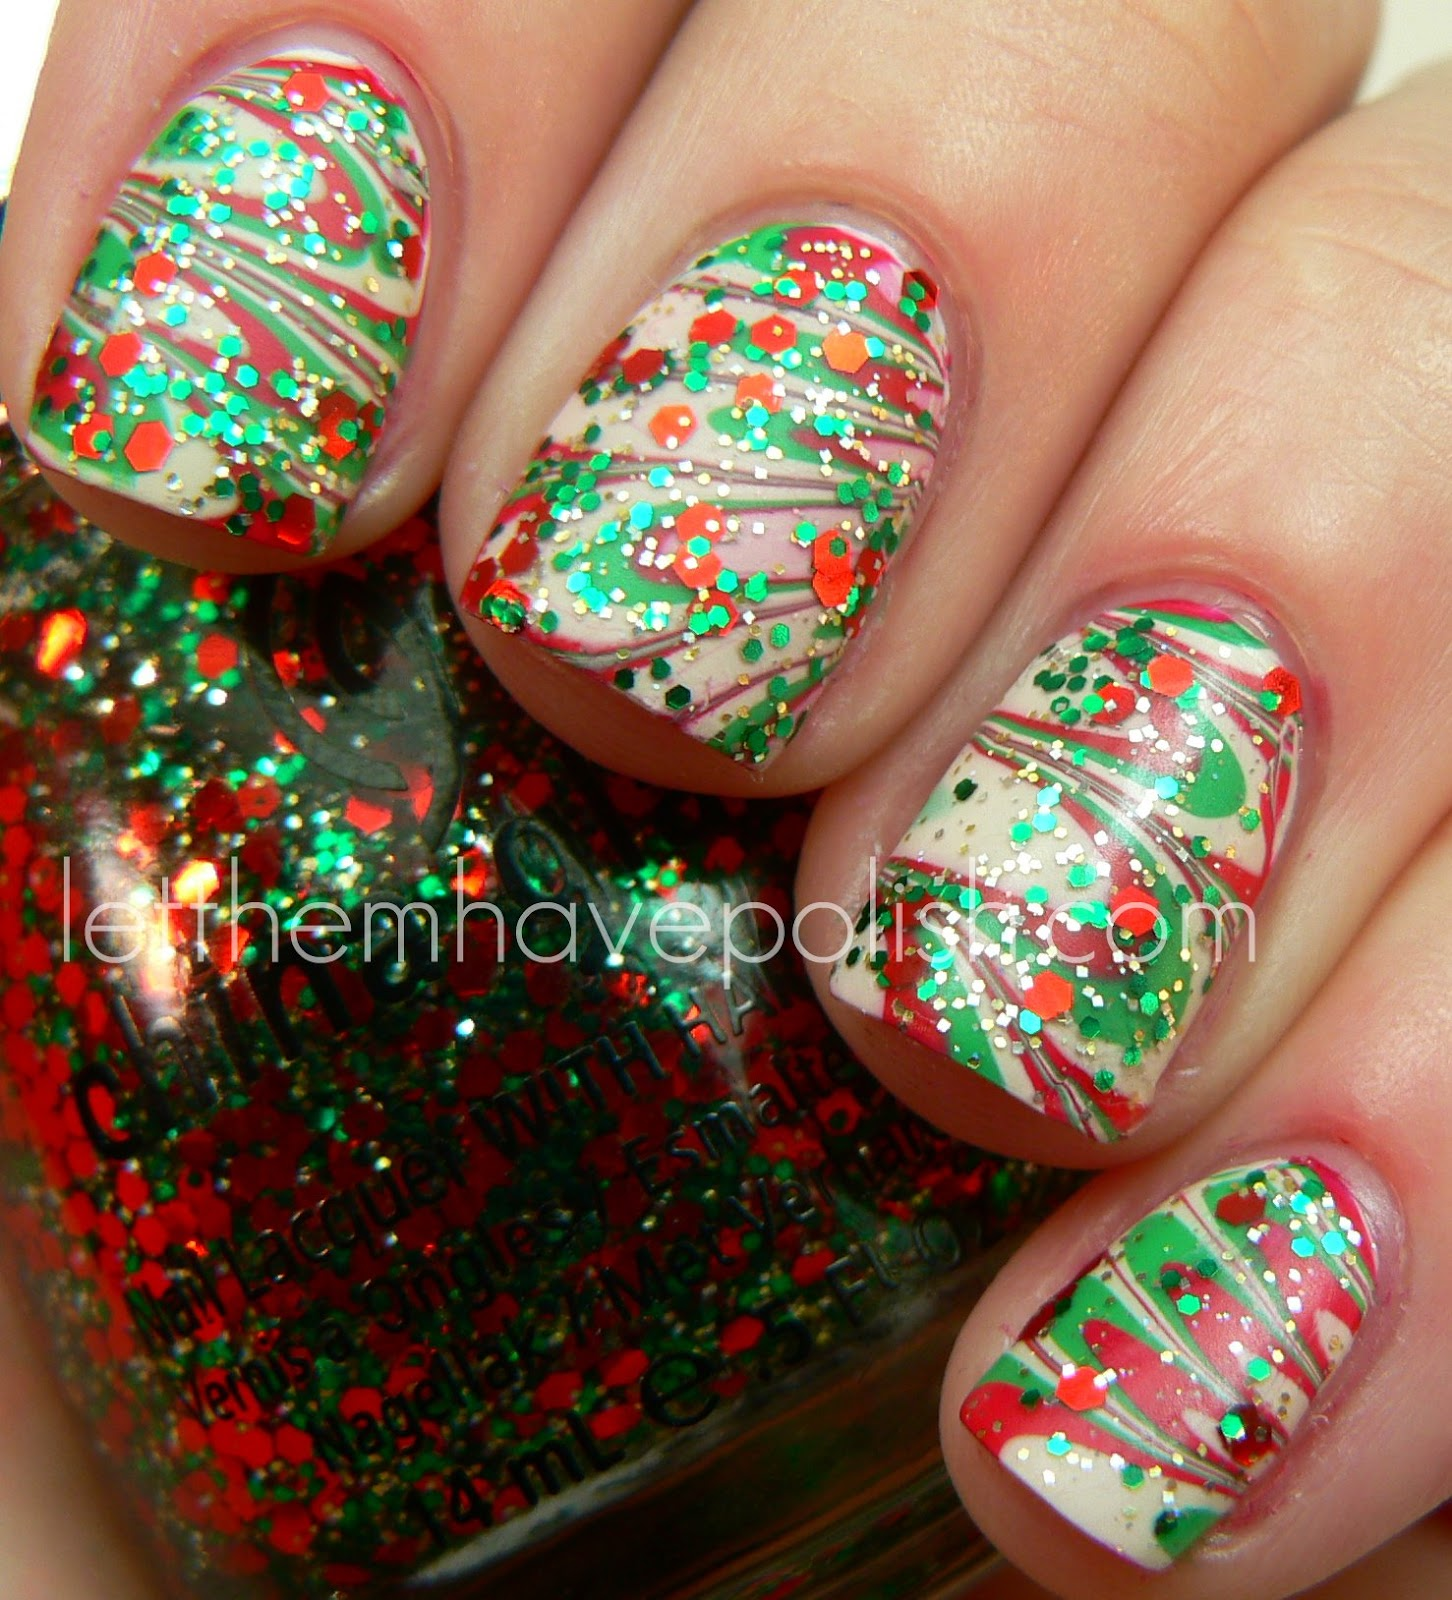 Xmas Nail Colours: Let Them Have Polish!: Merry Christmas!!! Holiday